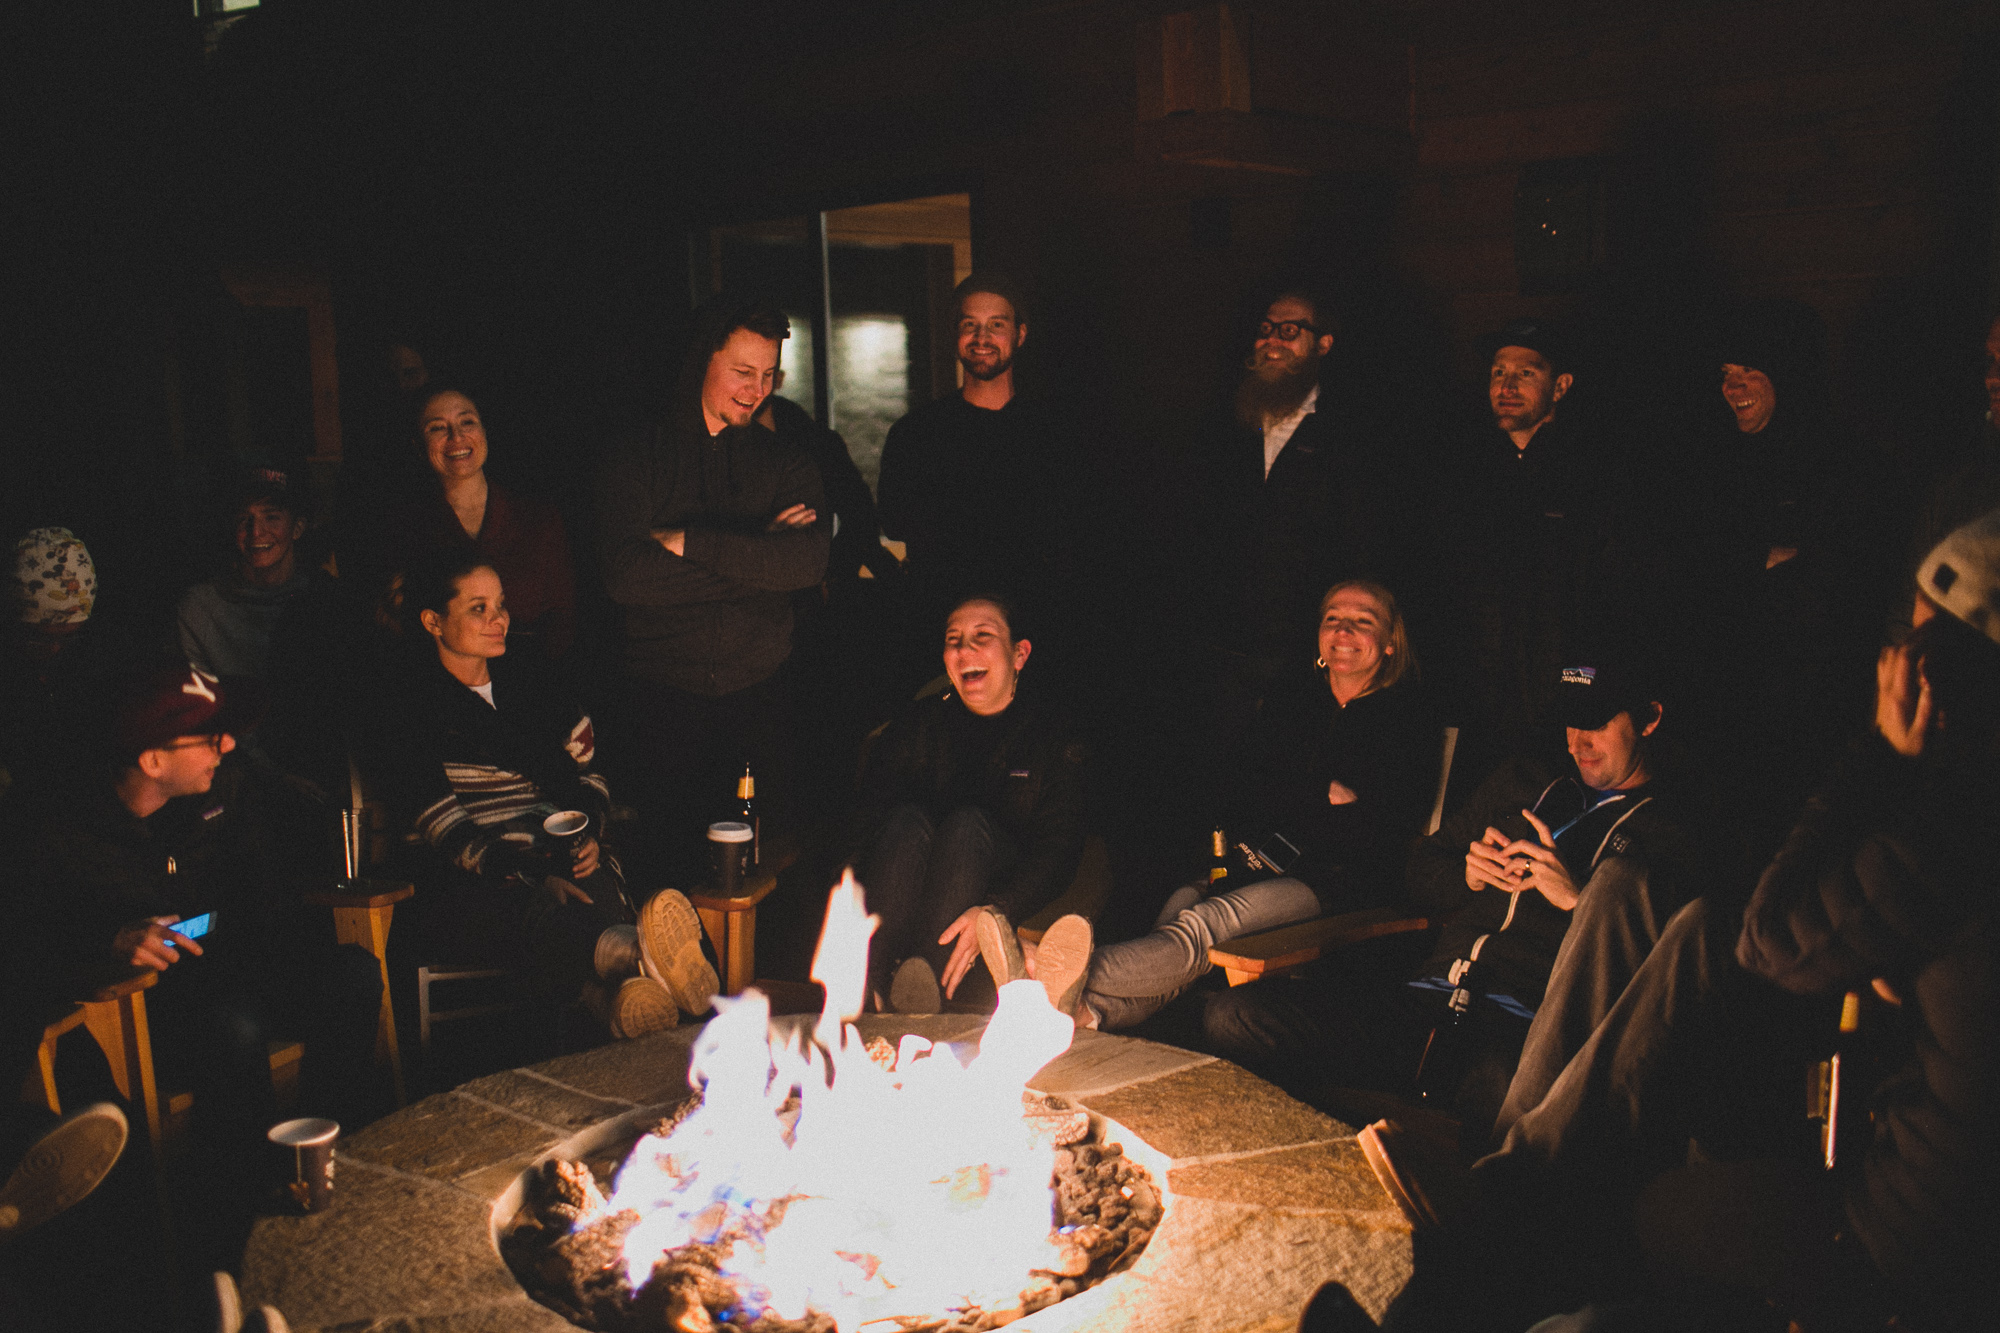 This casual chat around the fire was perhaps one of the most memorable and comical moments of the event. Photo: Rico Castillero